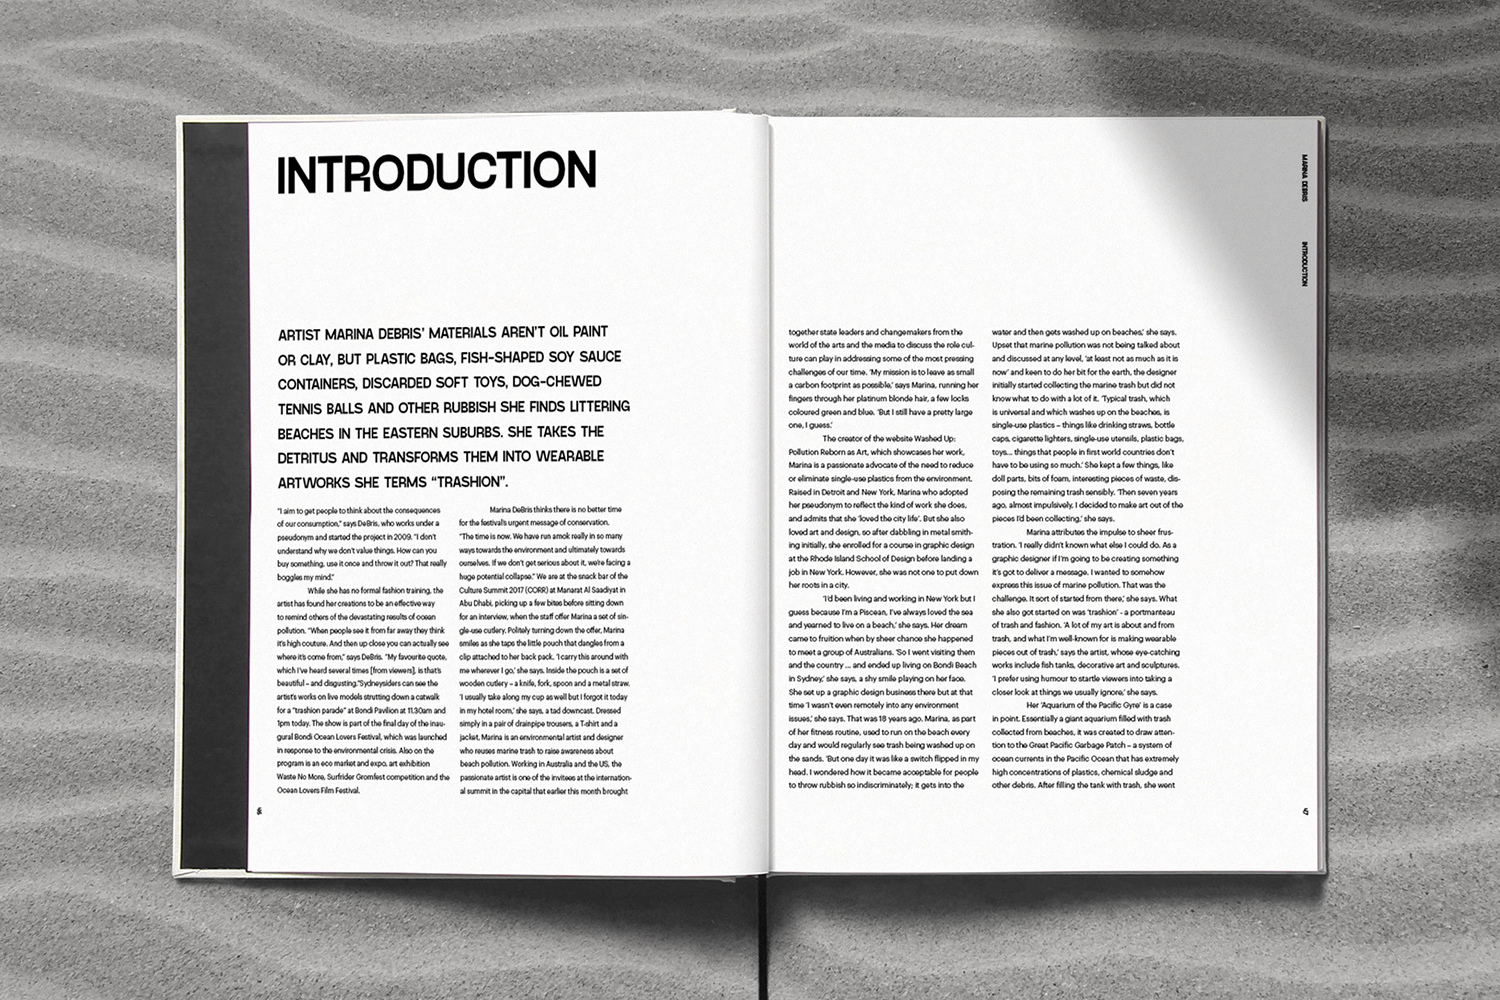 Book introduction spreads design on sand